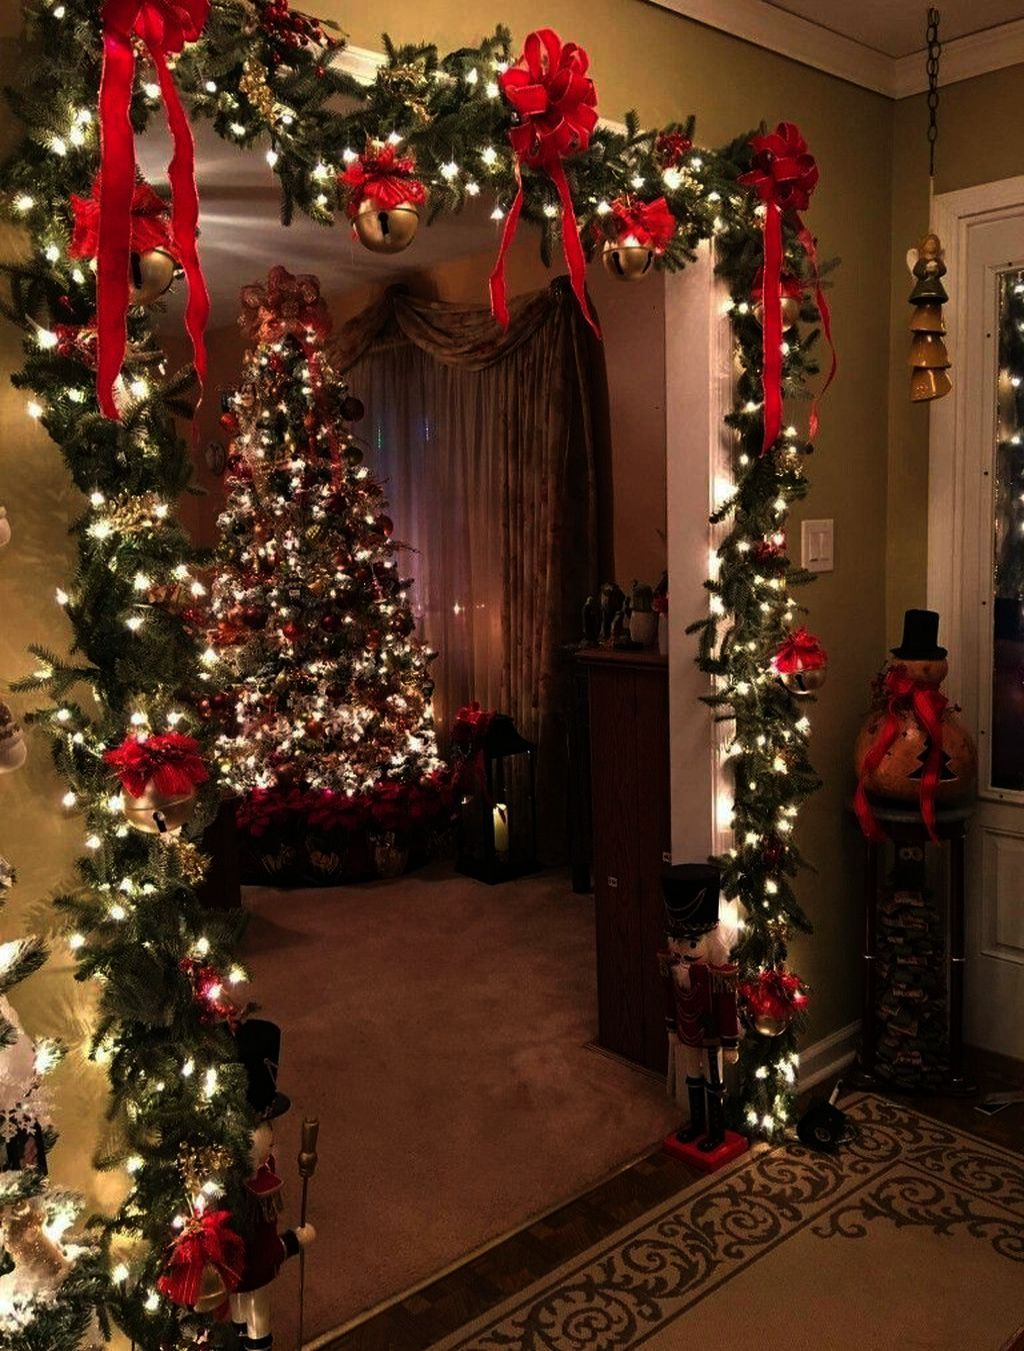 Christmas Decorations Walmart Tree Down Christmas Decorations Sale Clearance The Range Un Diy Christmas Decorations Easy Christmas Apartment Easy Christmas Diy